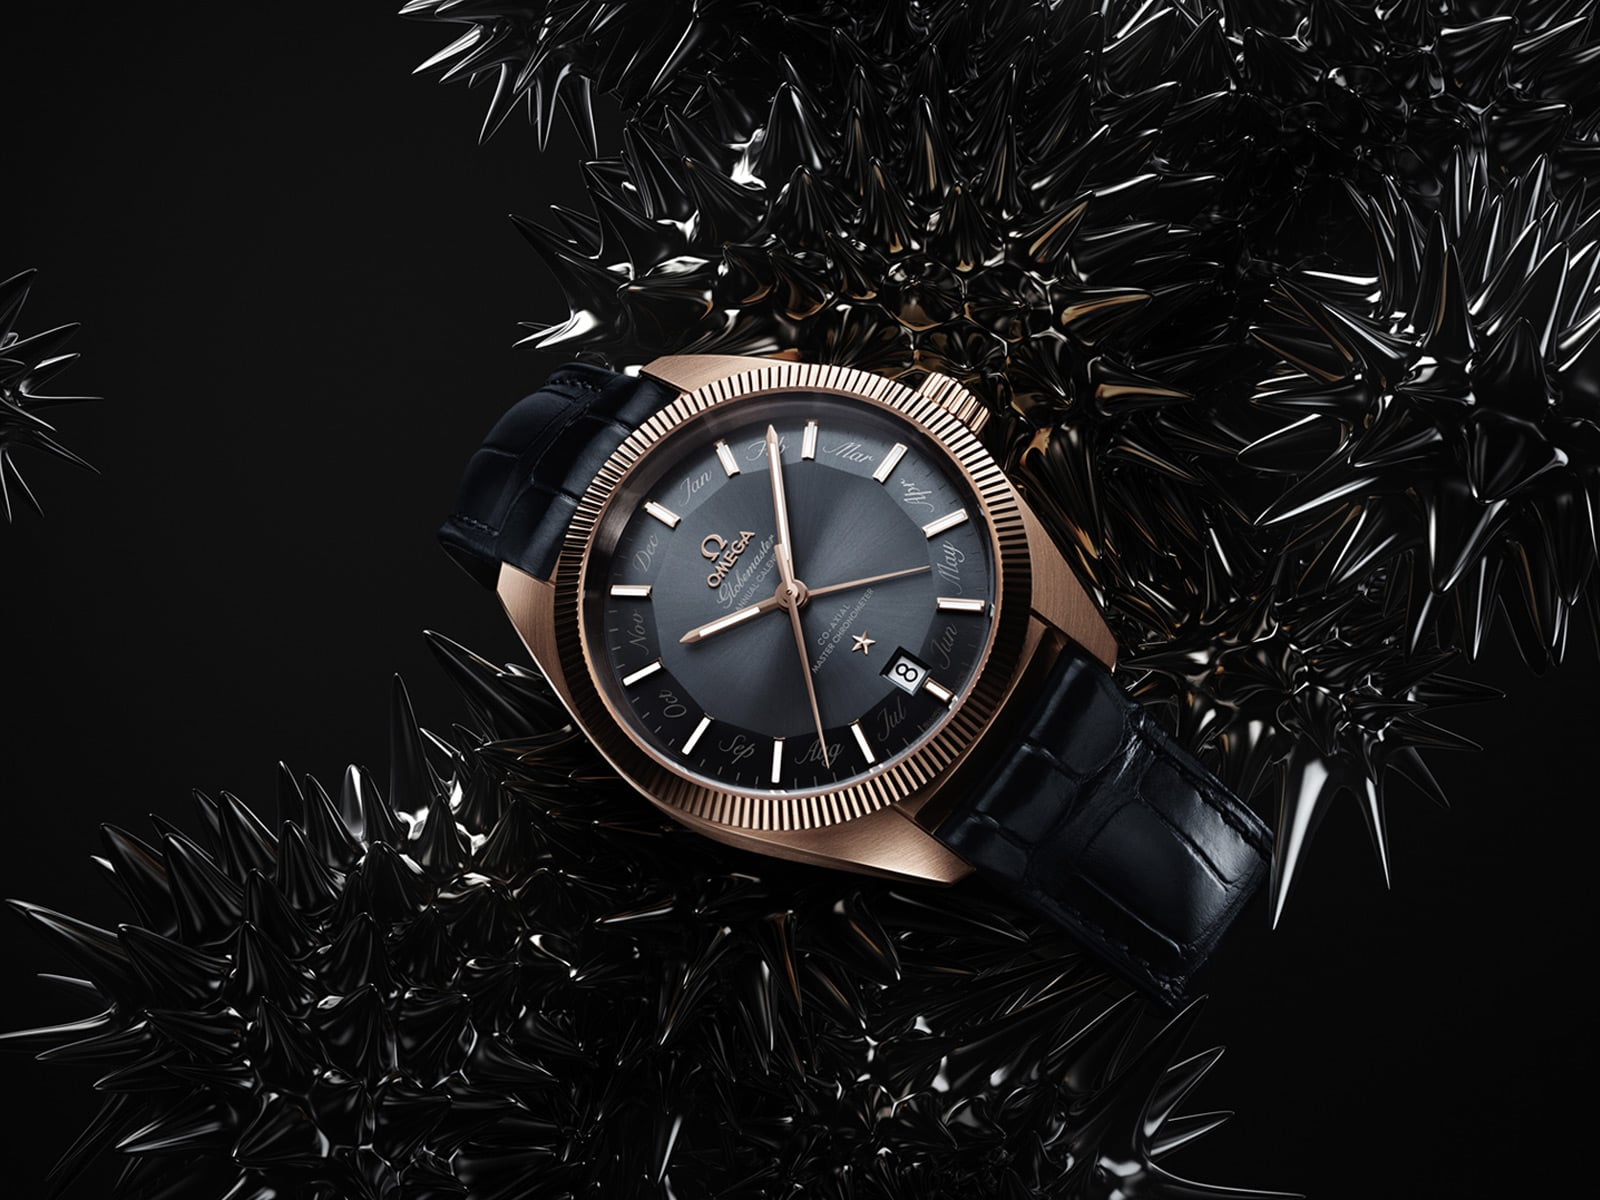 OMEGA Watches: IRRESISTIBLE RESISTANCE - Single - 62872